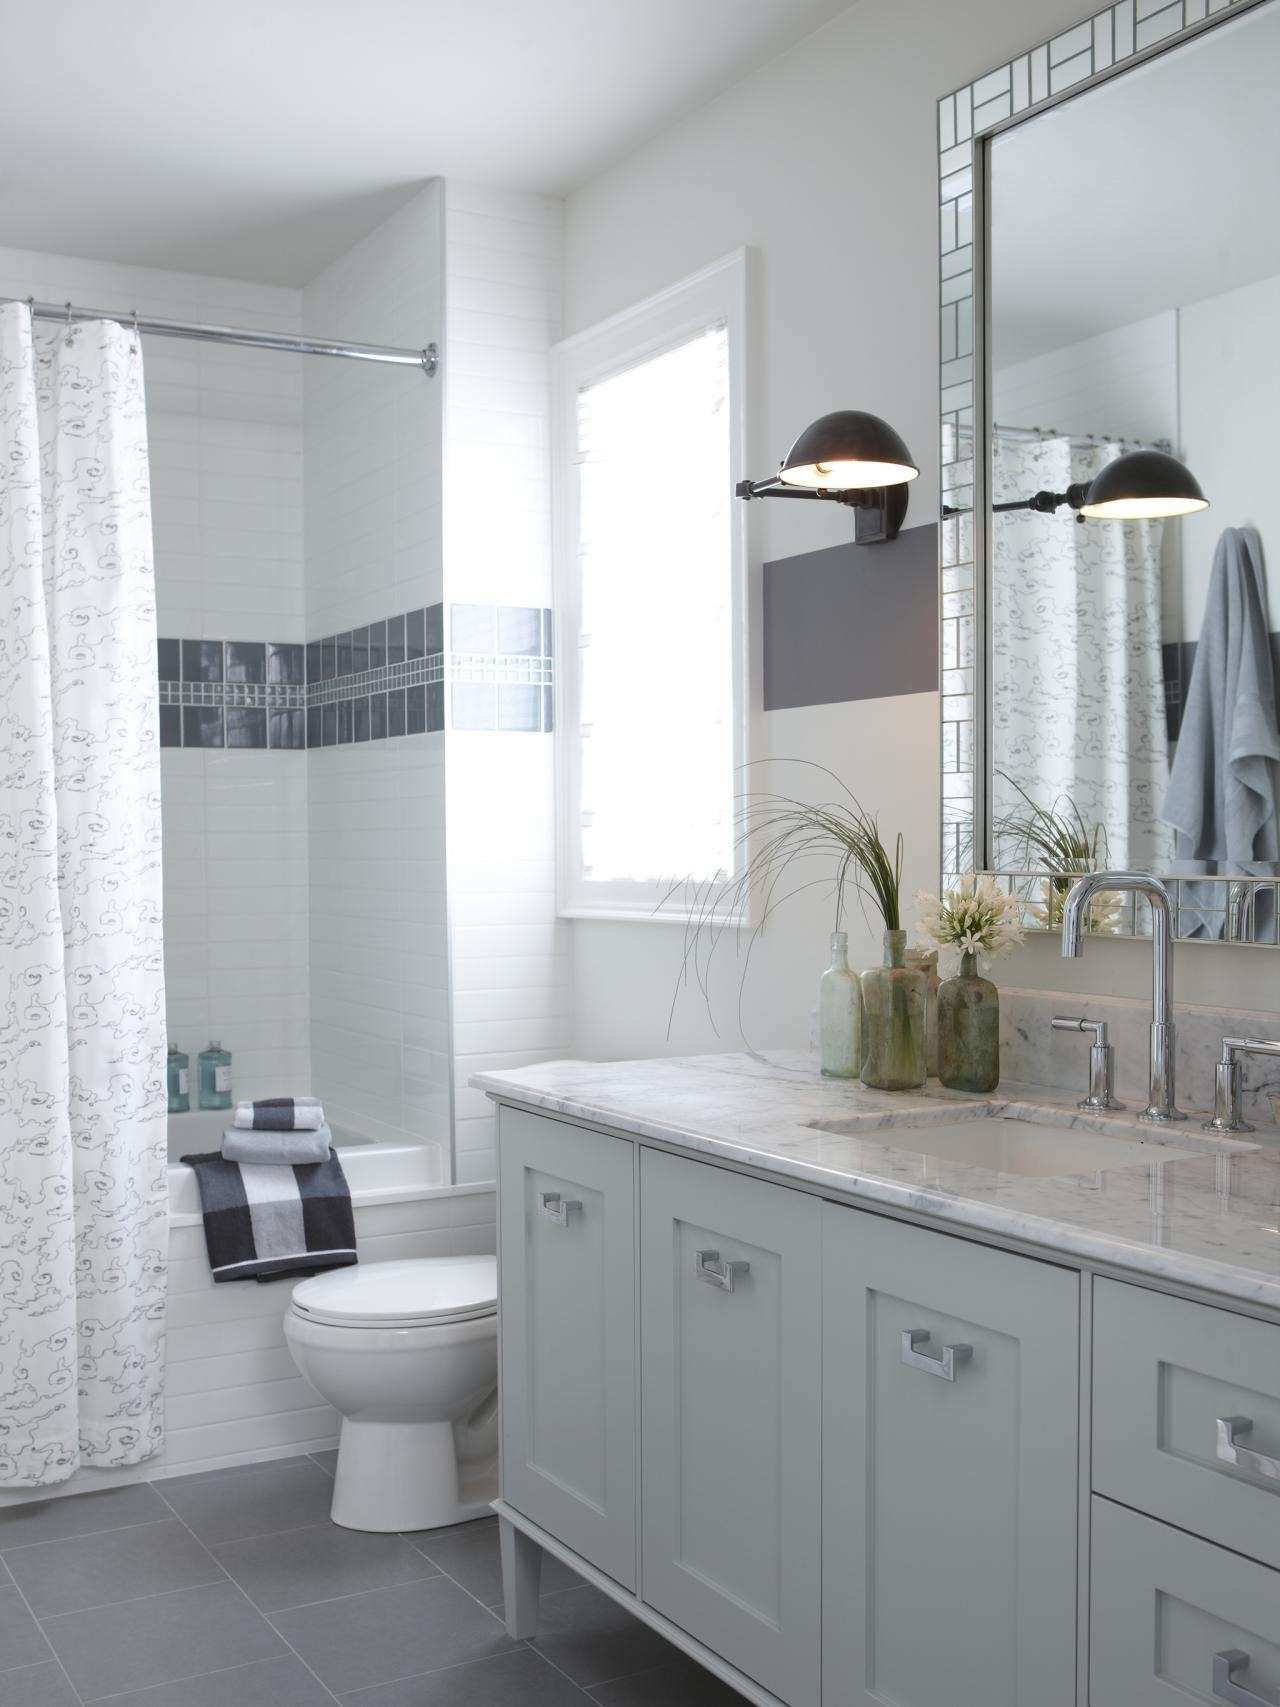 Picture Tiles for Walls Awesome 5 Tips for Choosing Bathroom Tile ...